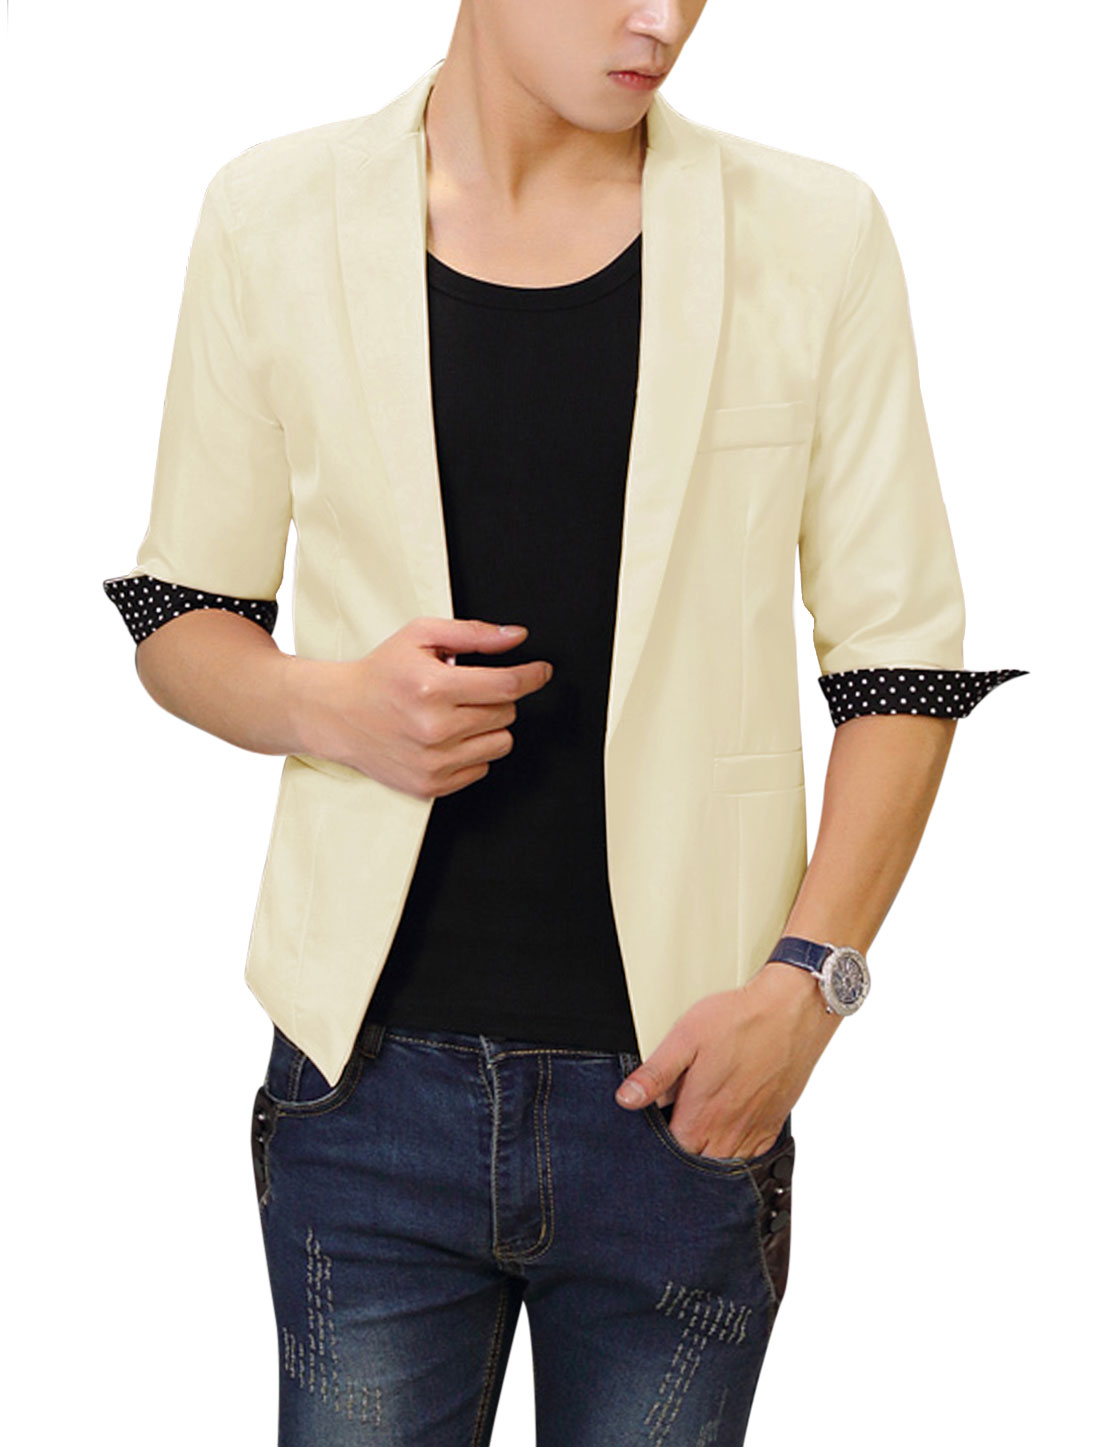 Men Chic Peaked Lapel Half Sleeve Lining Leisure Blazer Beige M